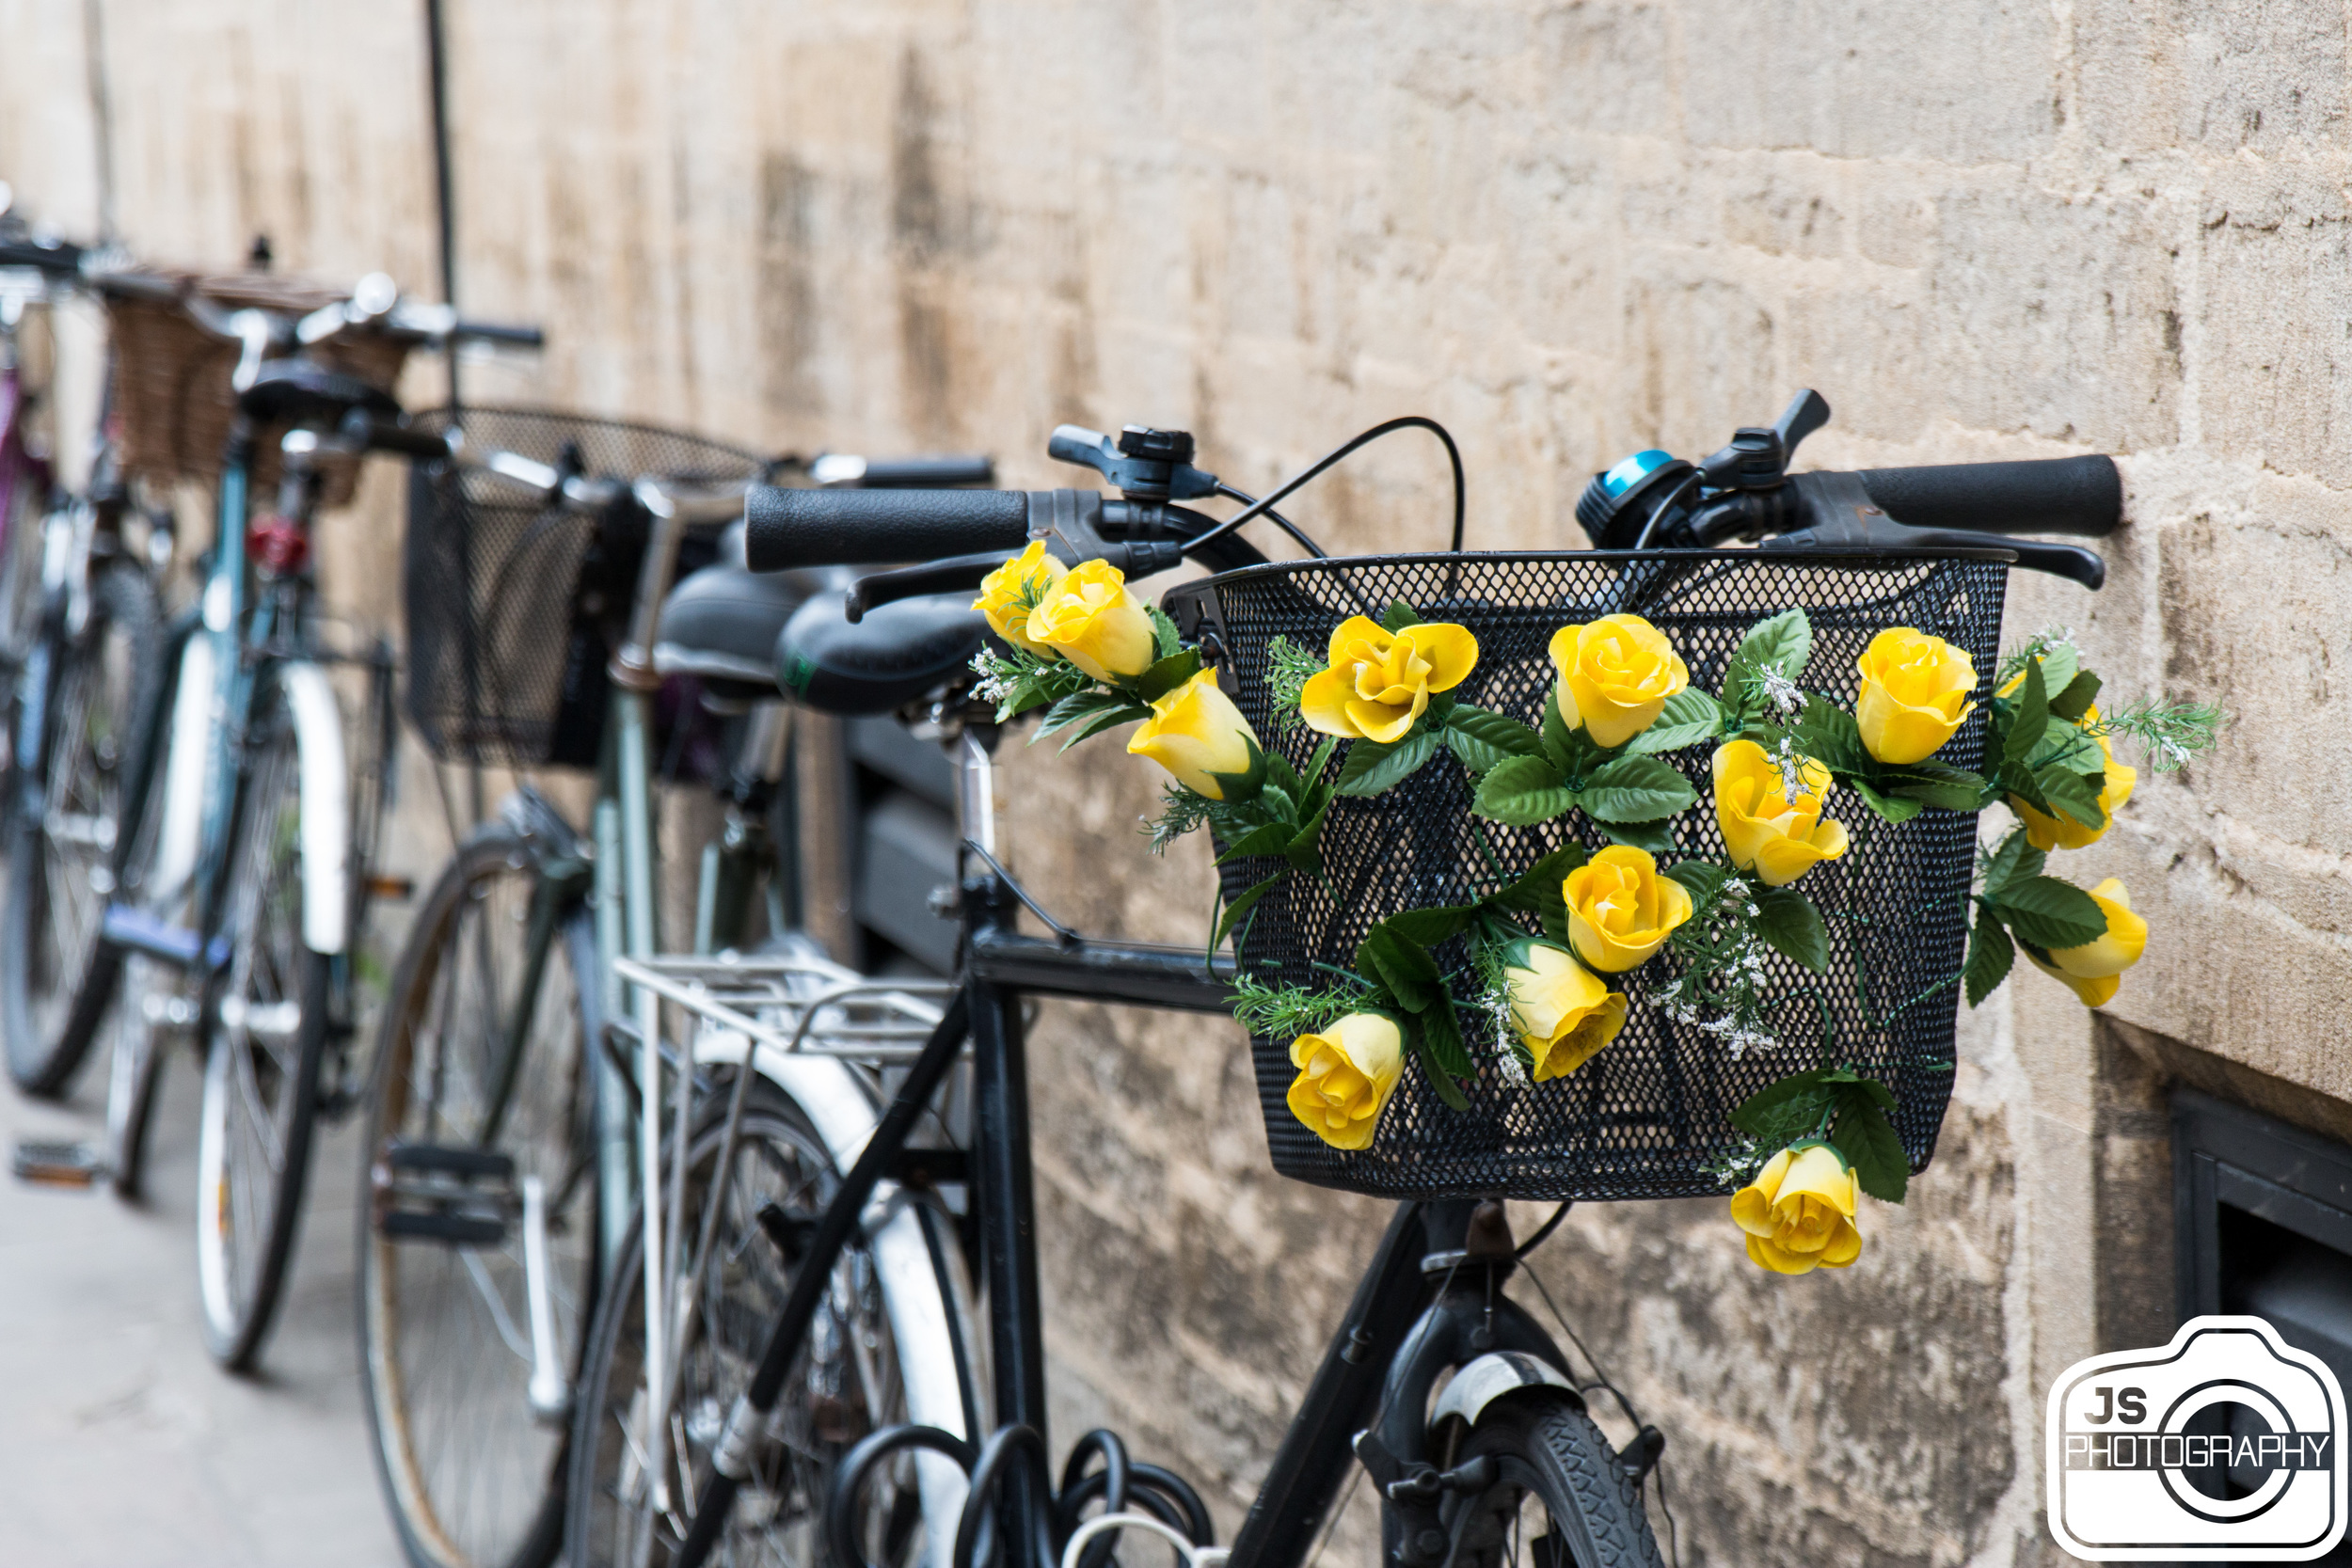 There are tons of people who bike in this city and they go fast! If you ever visit, be careful because they whip around the corners and zip through the streets. With that being said though, I did find this nice bike with flowers which I liked.